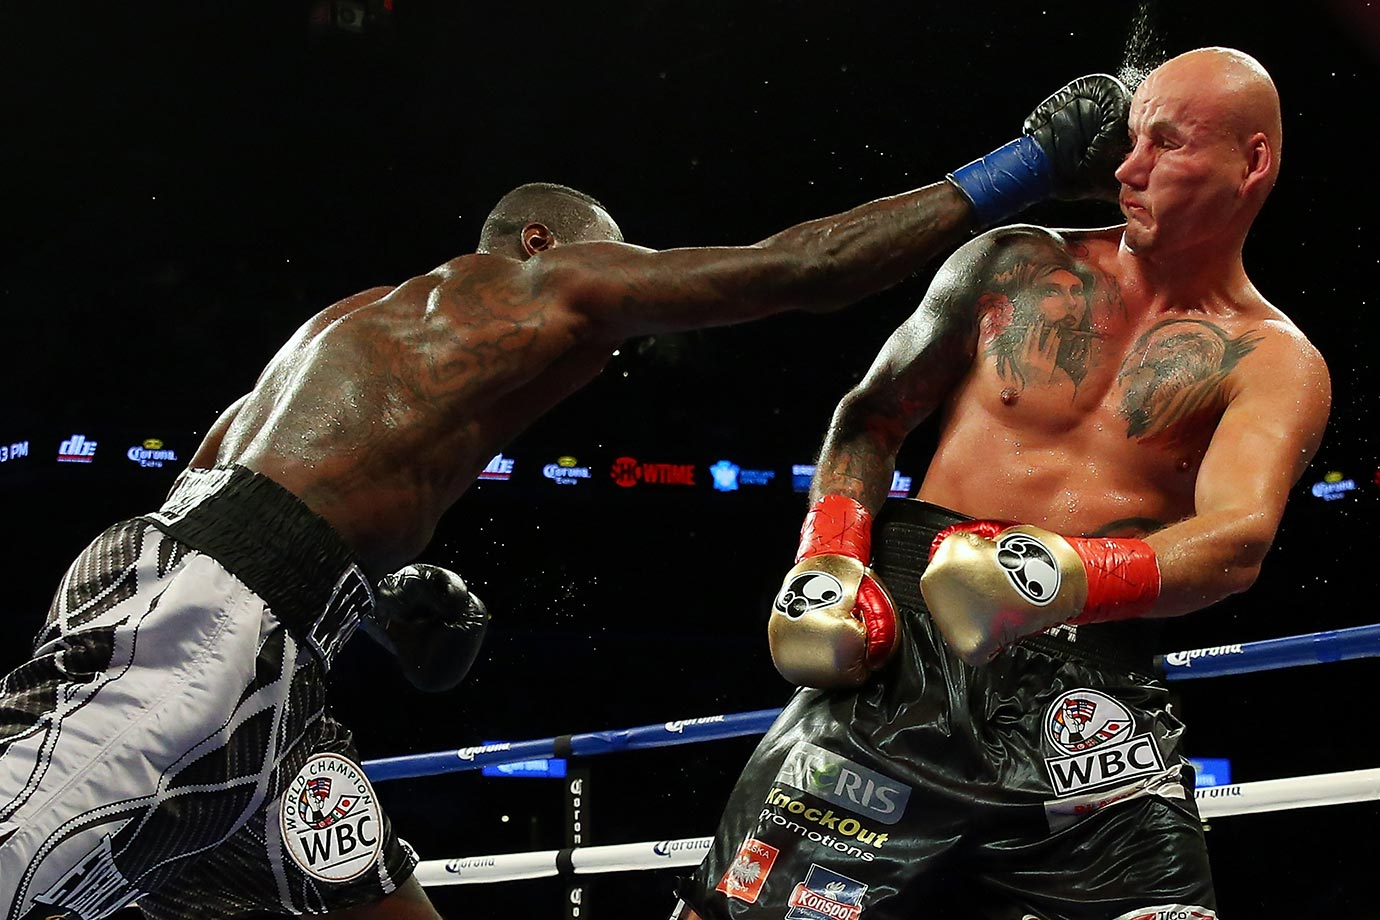 Deontay Wilder punches Artur Szpilka during their WBC Heavyweight Championship bout at Barclays Center in Brooklyn.